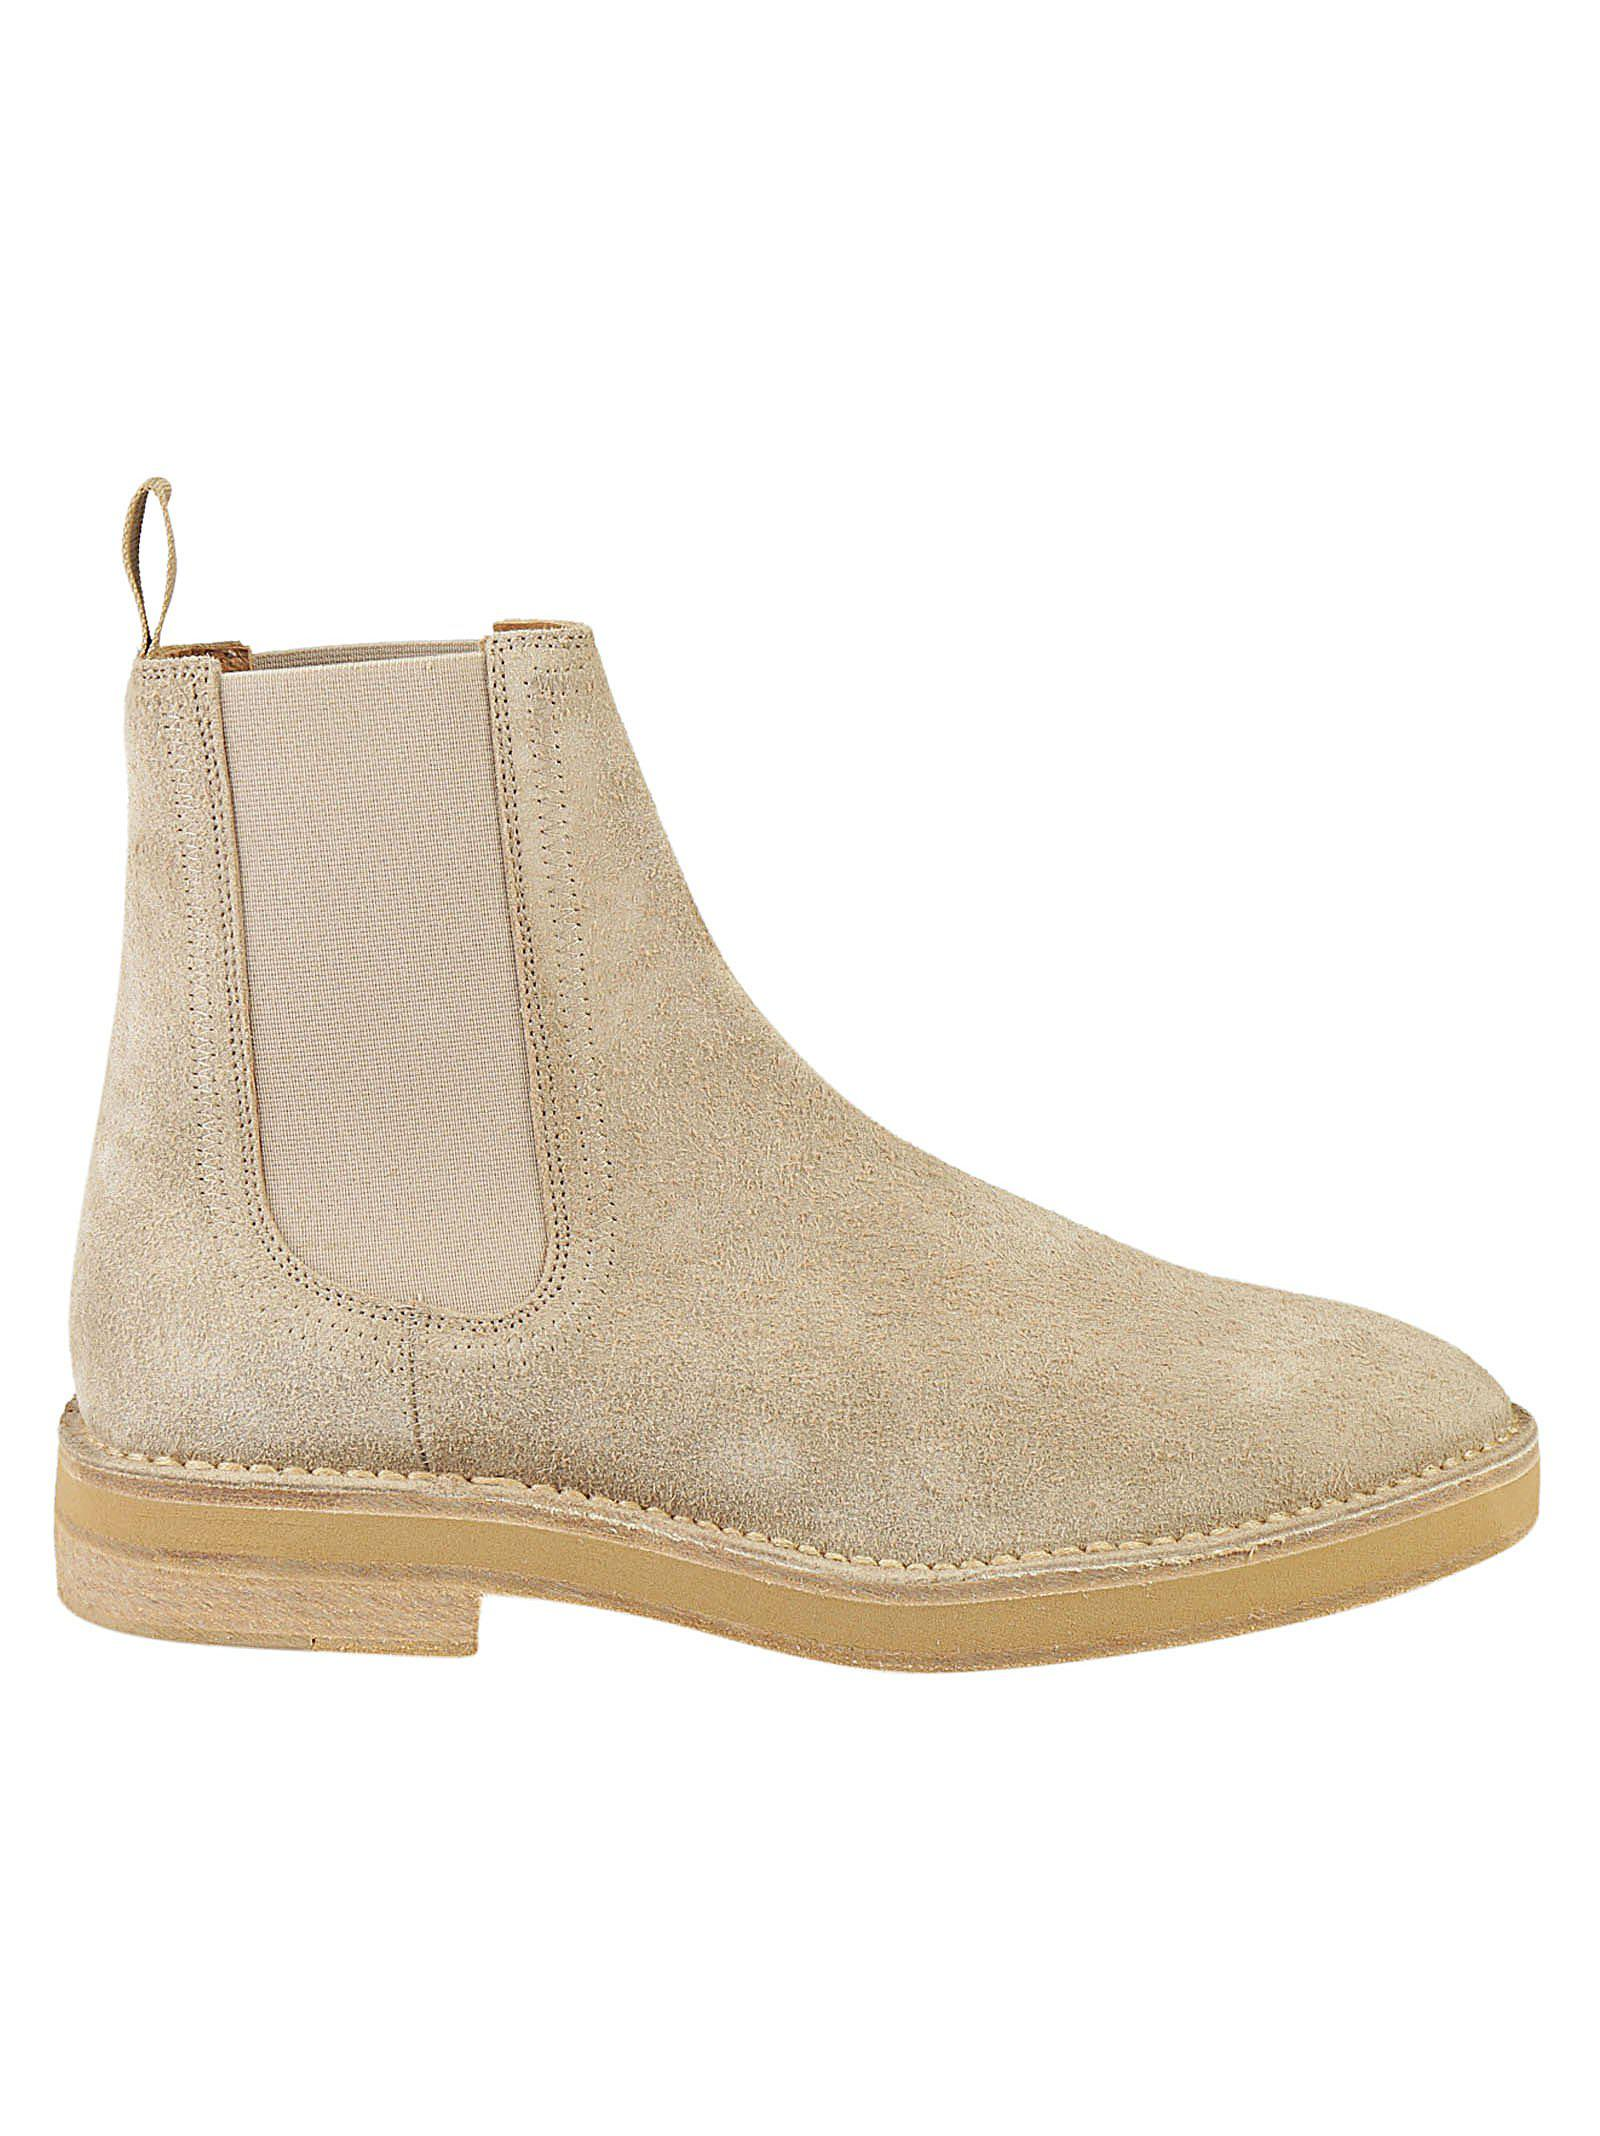 5a5010a0e Lyst - Yeezy Season 6 Chelsea Boot in Natural for Men